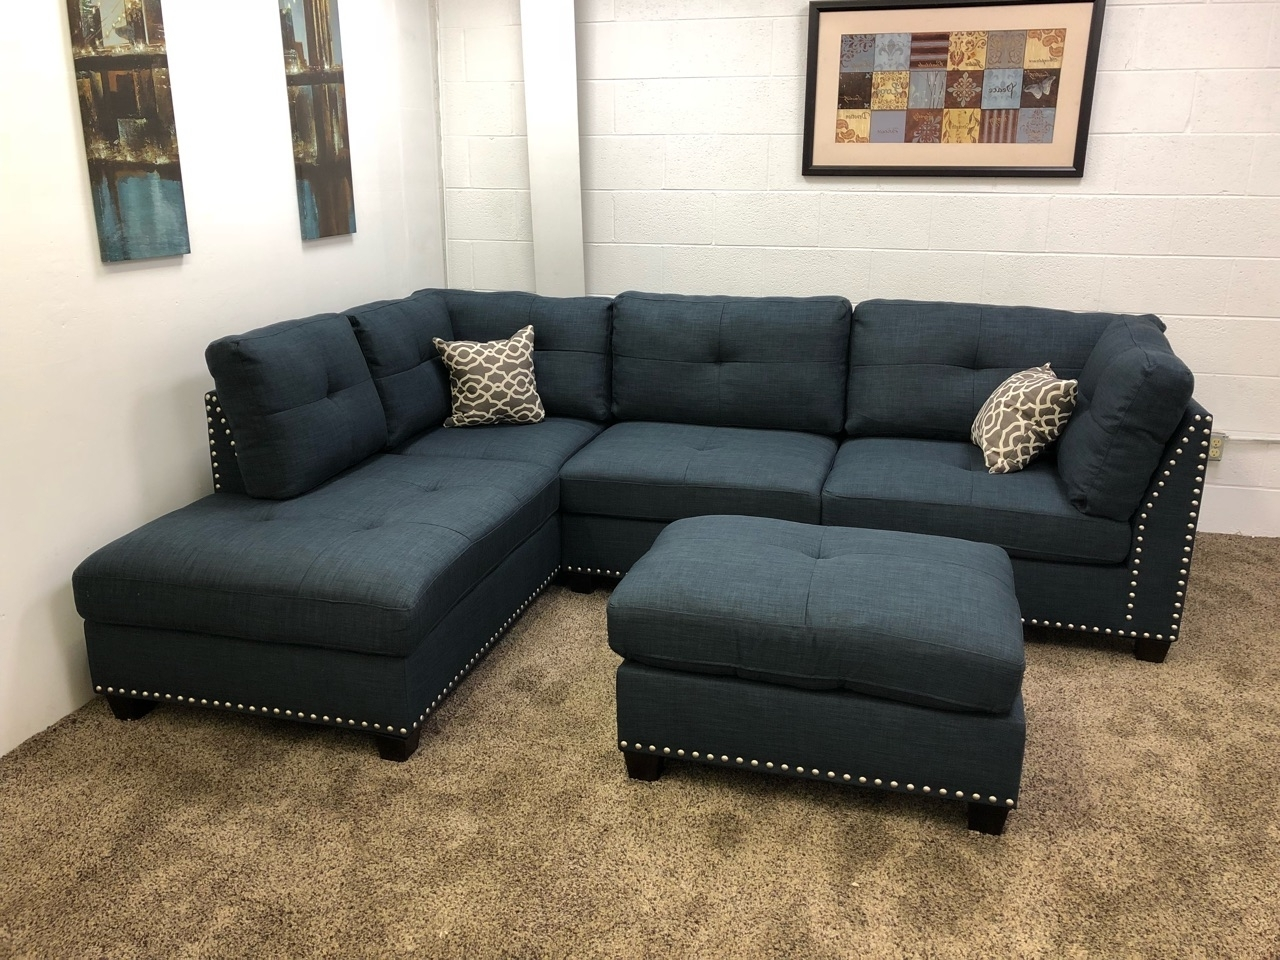 Sectional Sofas With Chaise Lounge And Ottoman Intended For Famous 0 In Stock)#n754R  $250 Down  Blue Studded Linen Sectional Sofa W (View 11 of 20)